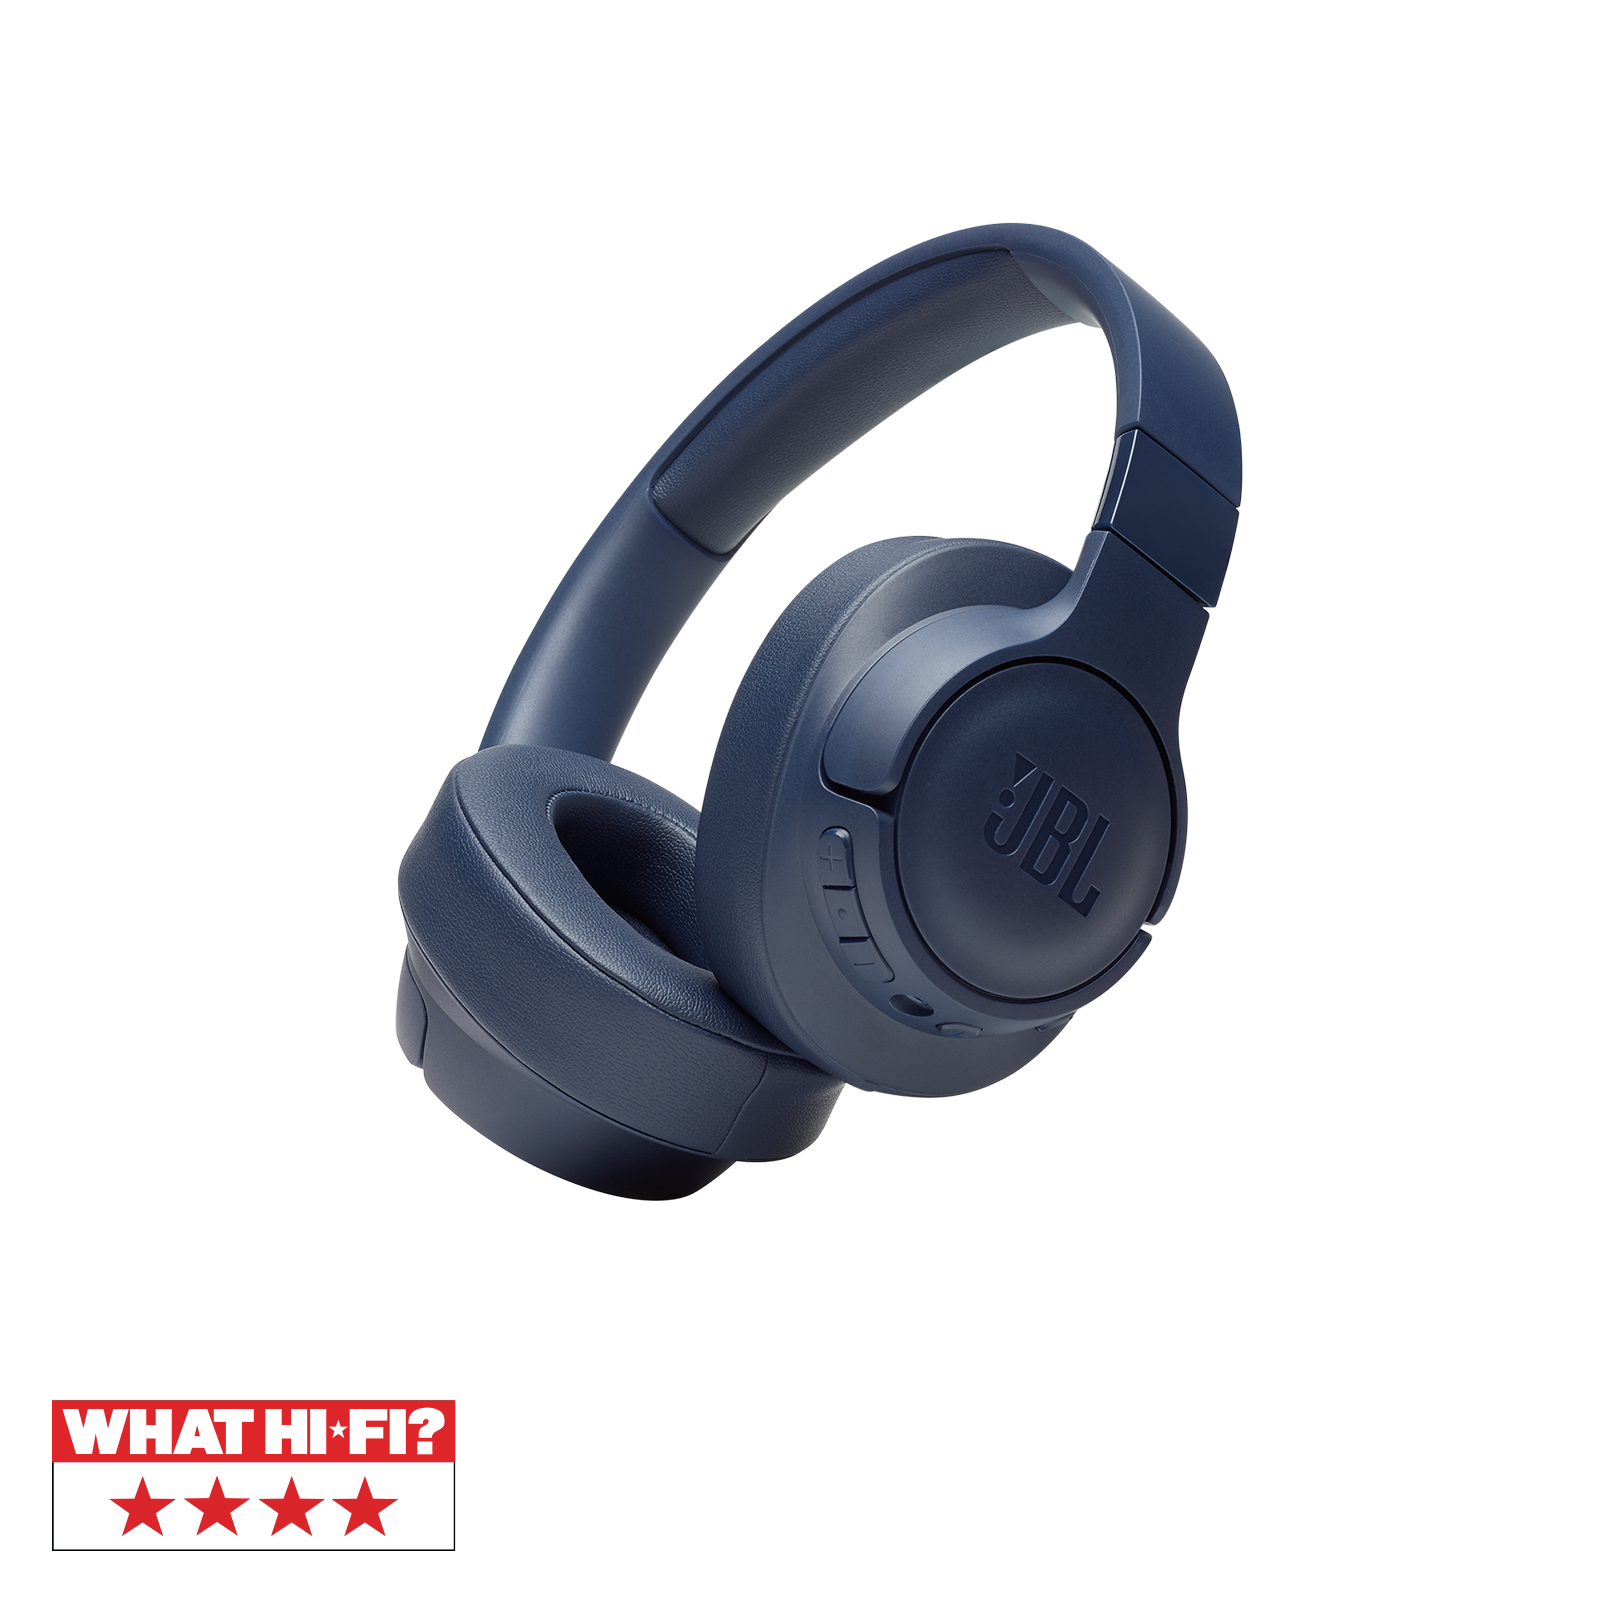 JBL TUNE 750BTNC - Blue - Wireless Over-Ear ANC Headphones - Hero